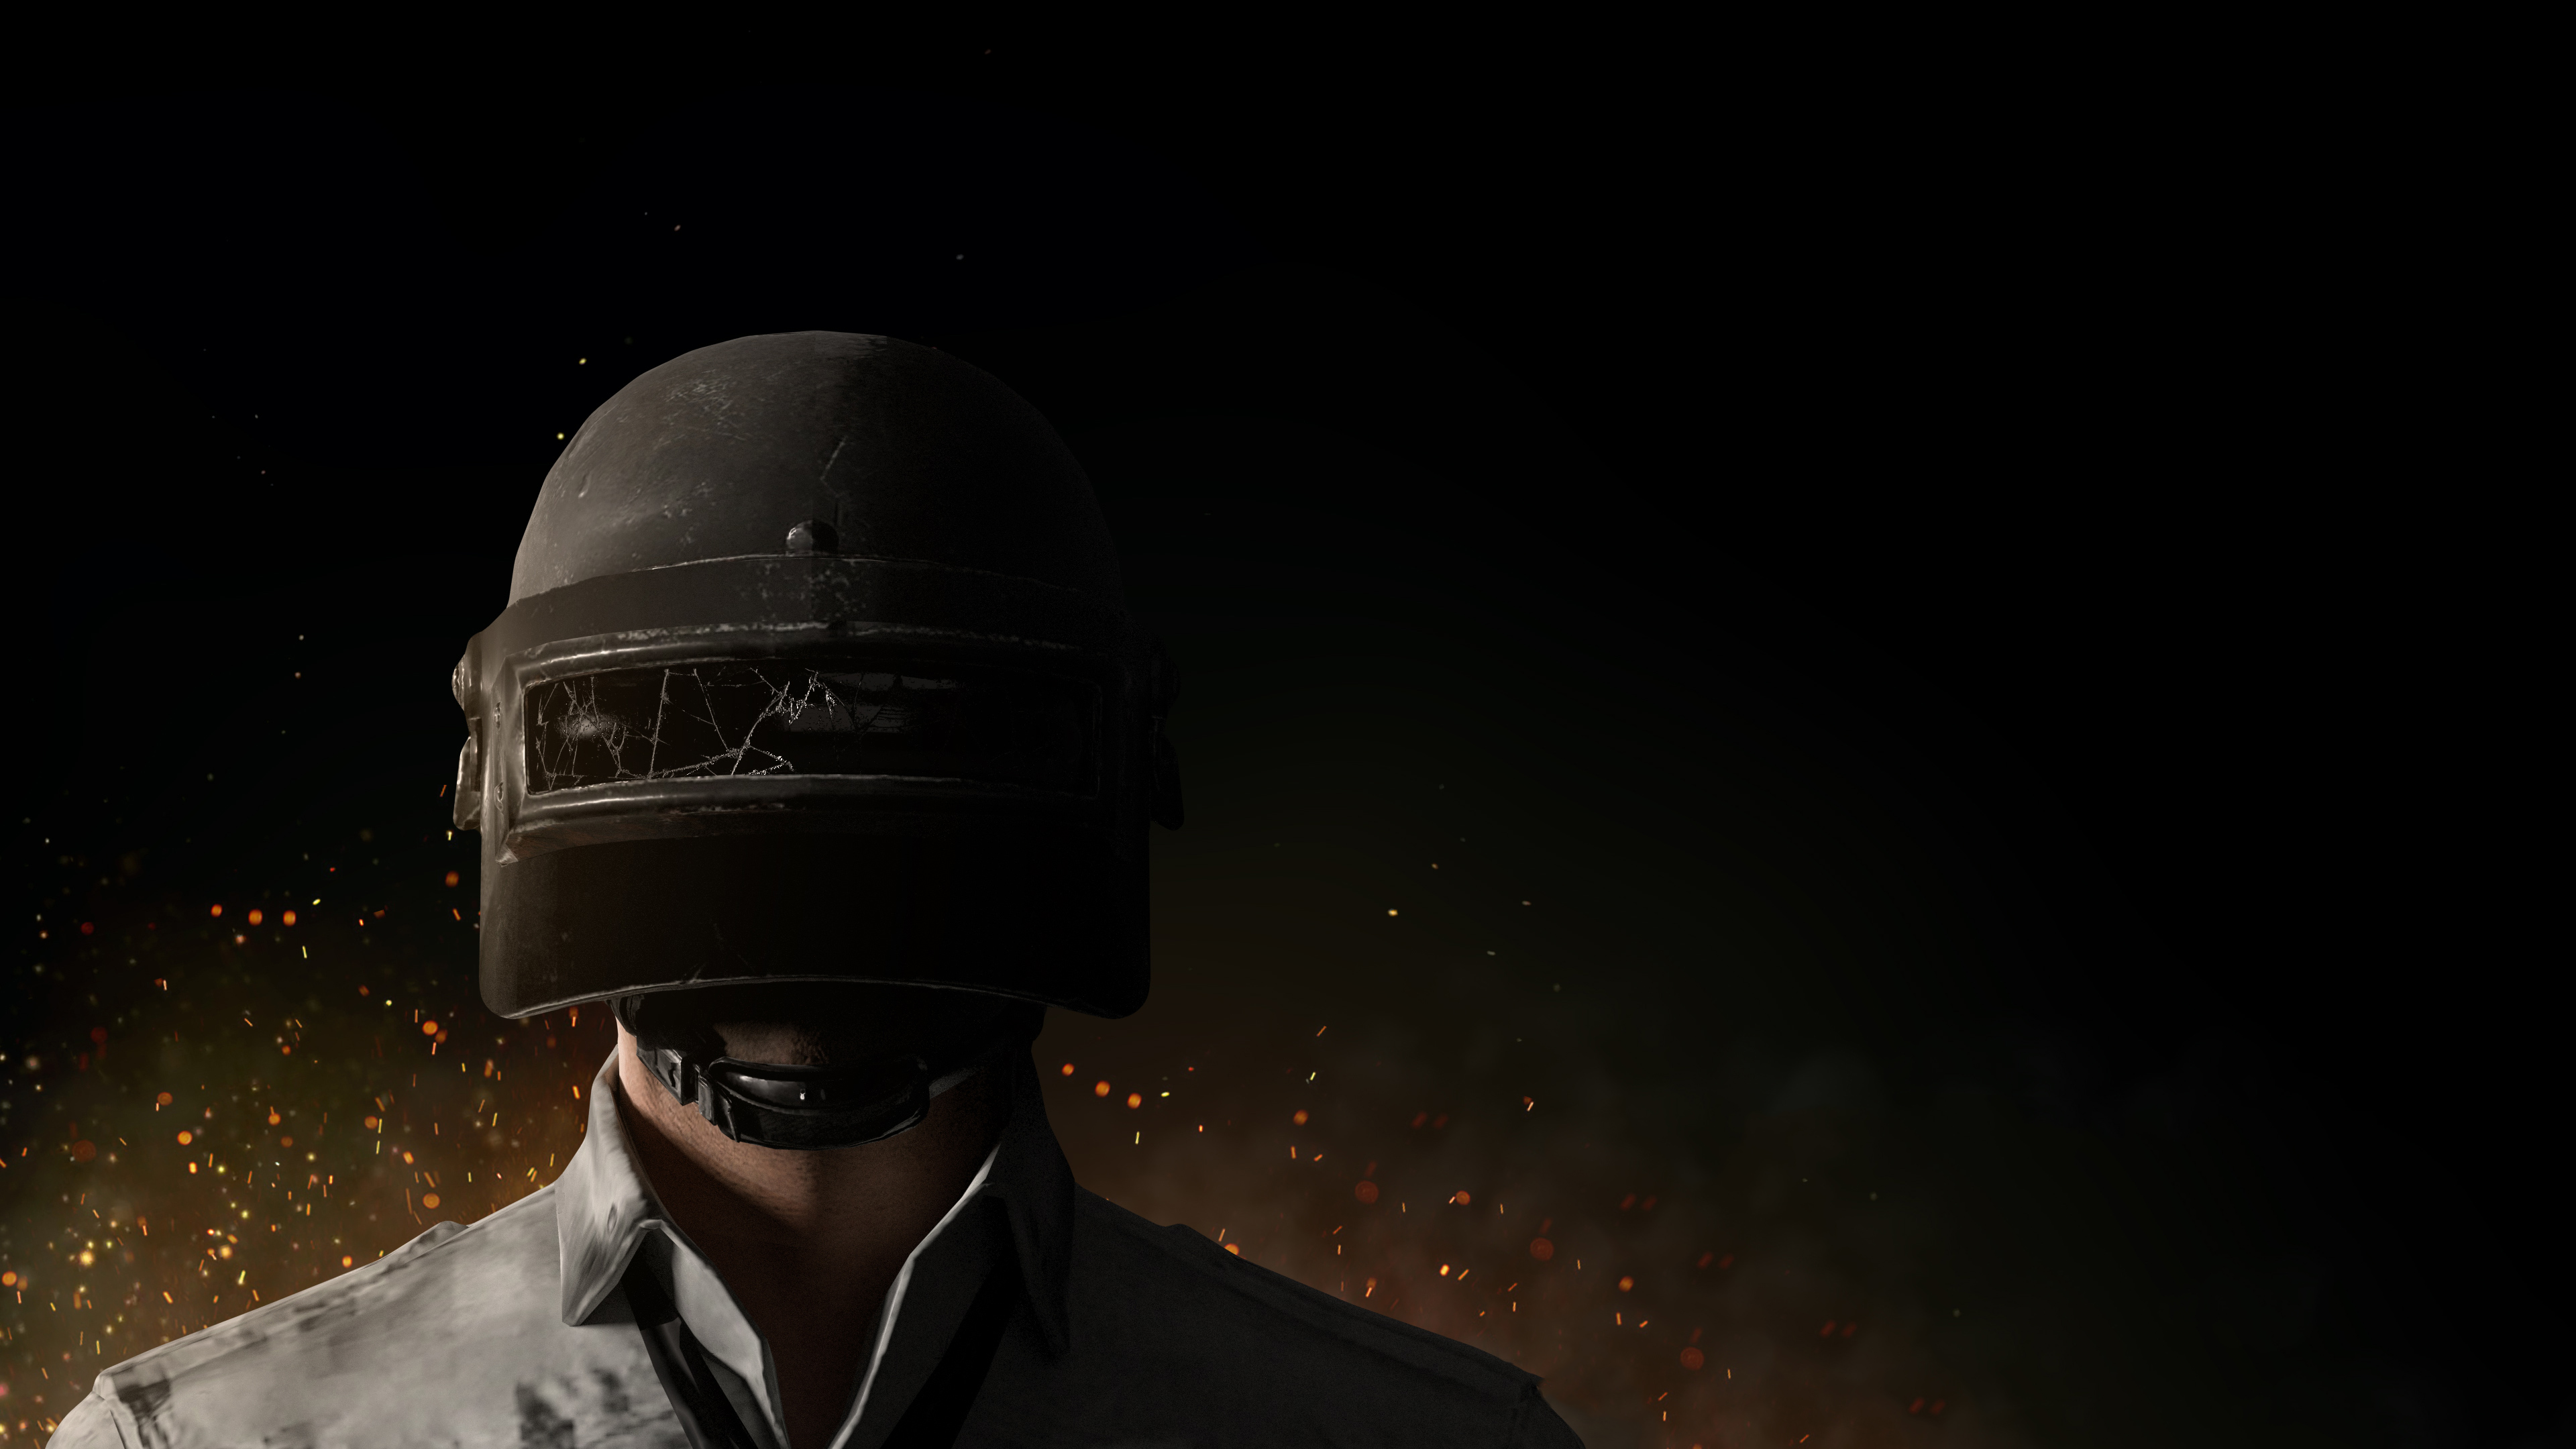 Pubg Minimalist Pophead Full Hd Wallpaper: PUBG Helmet Guy 4k, HD Games, 4k Wallpapers, Images